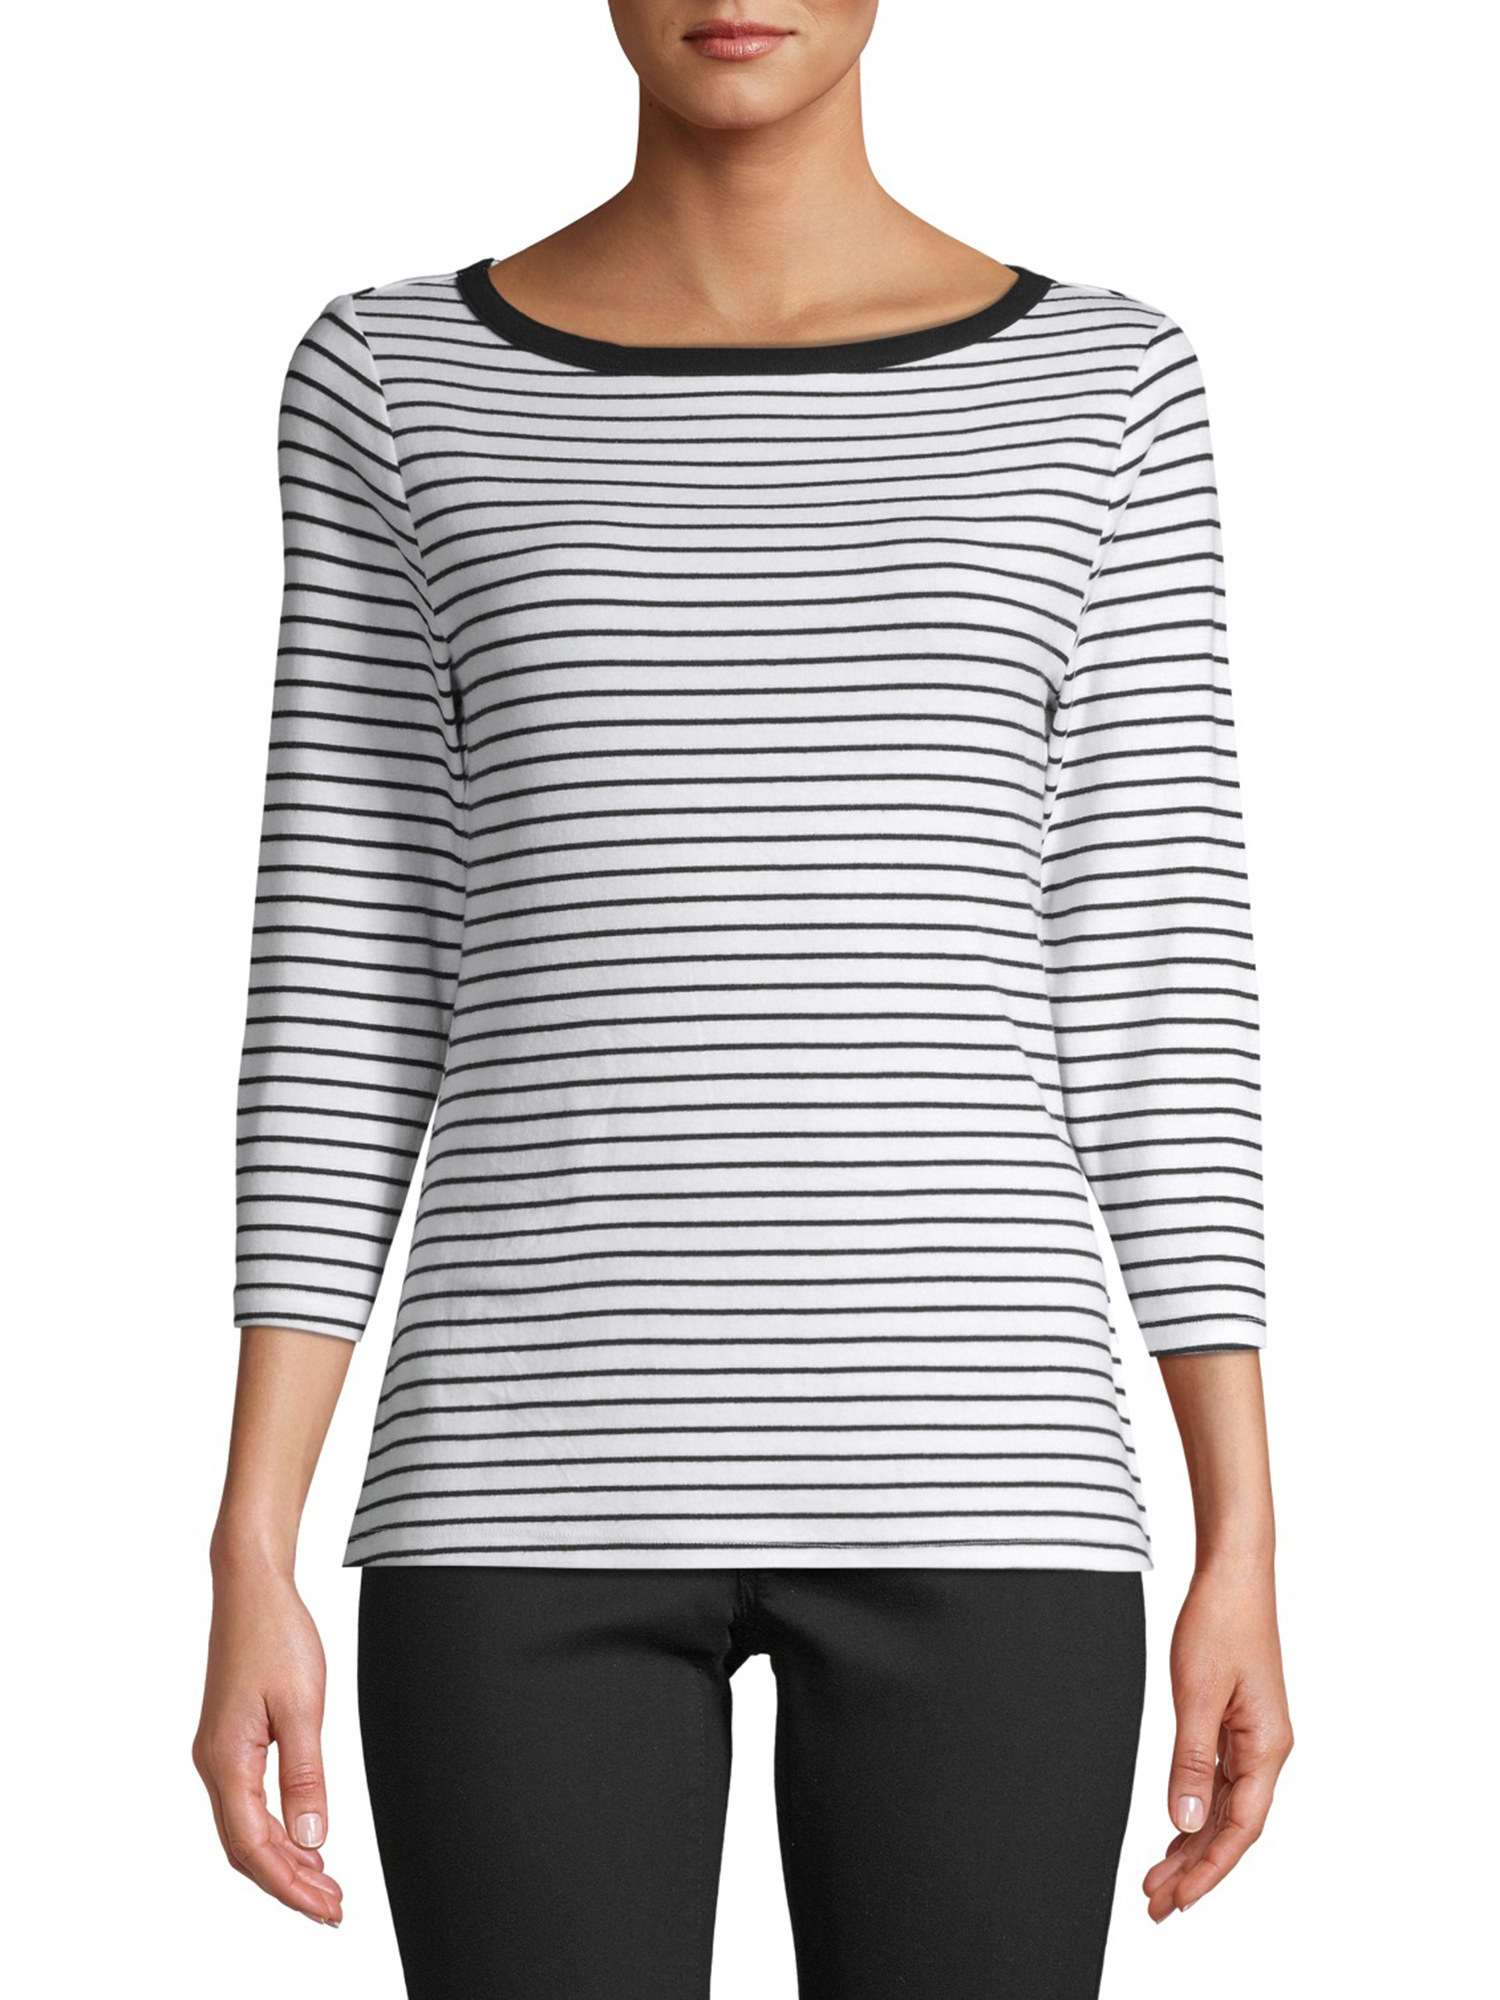 Model wearing black and white striped sleeved top